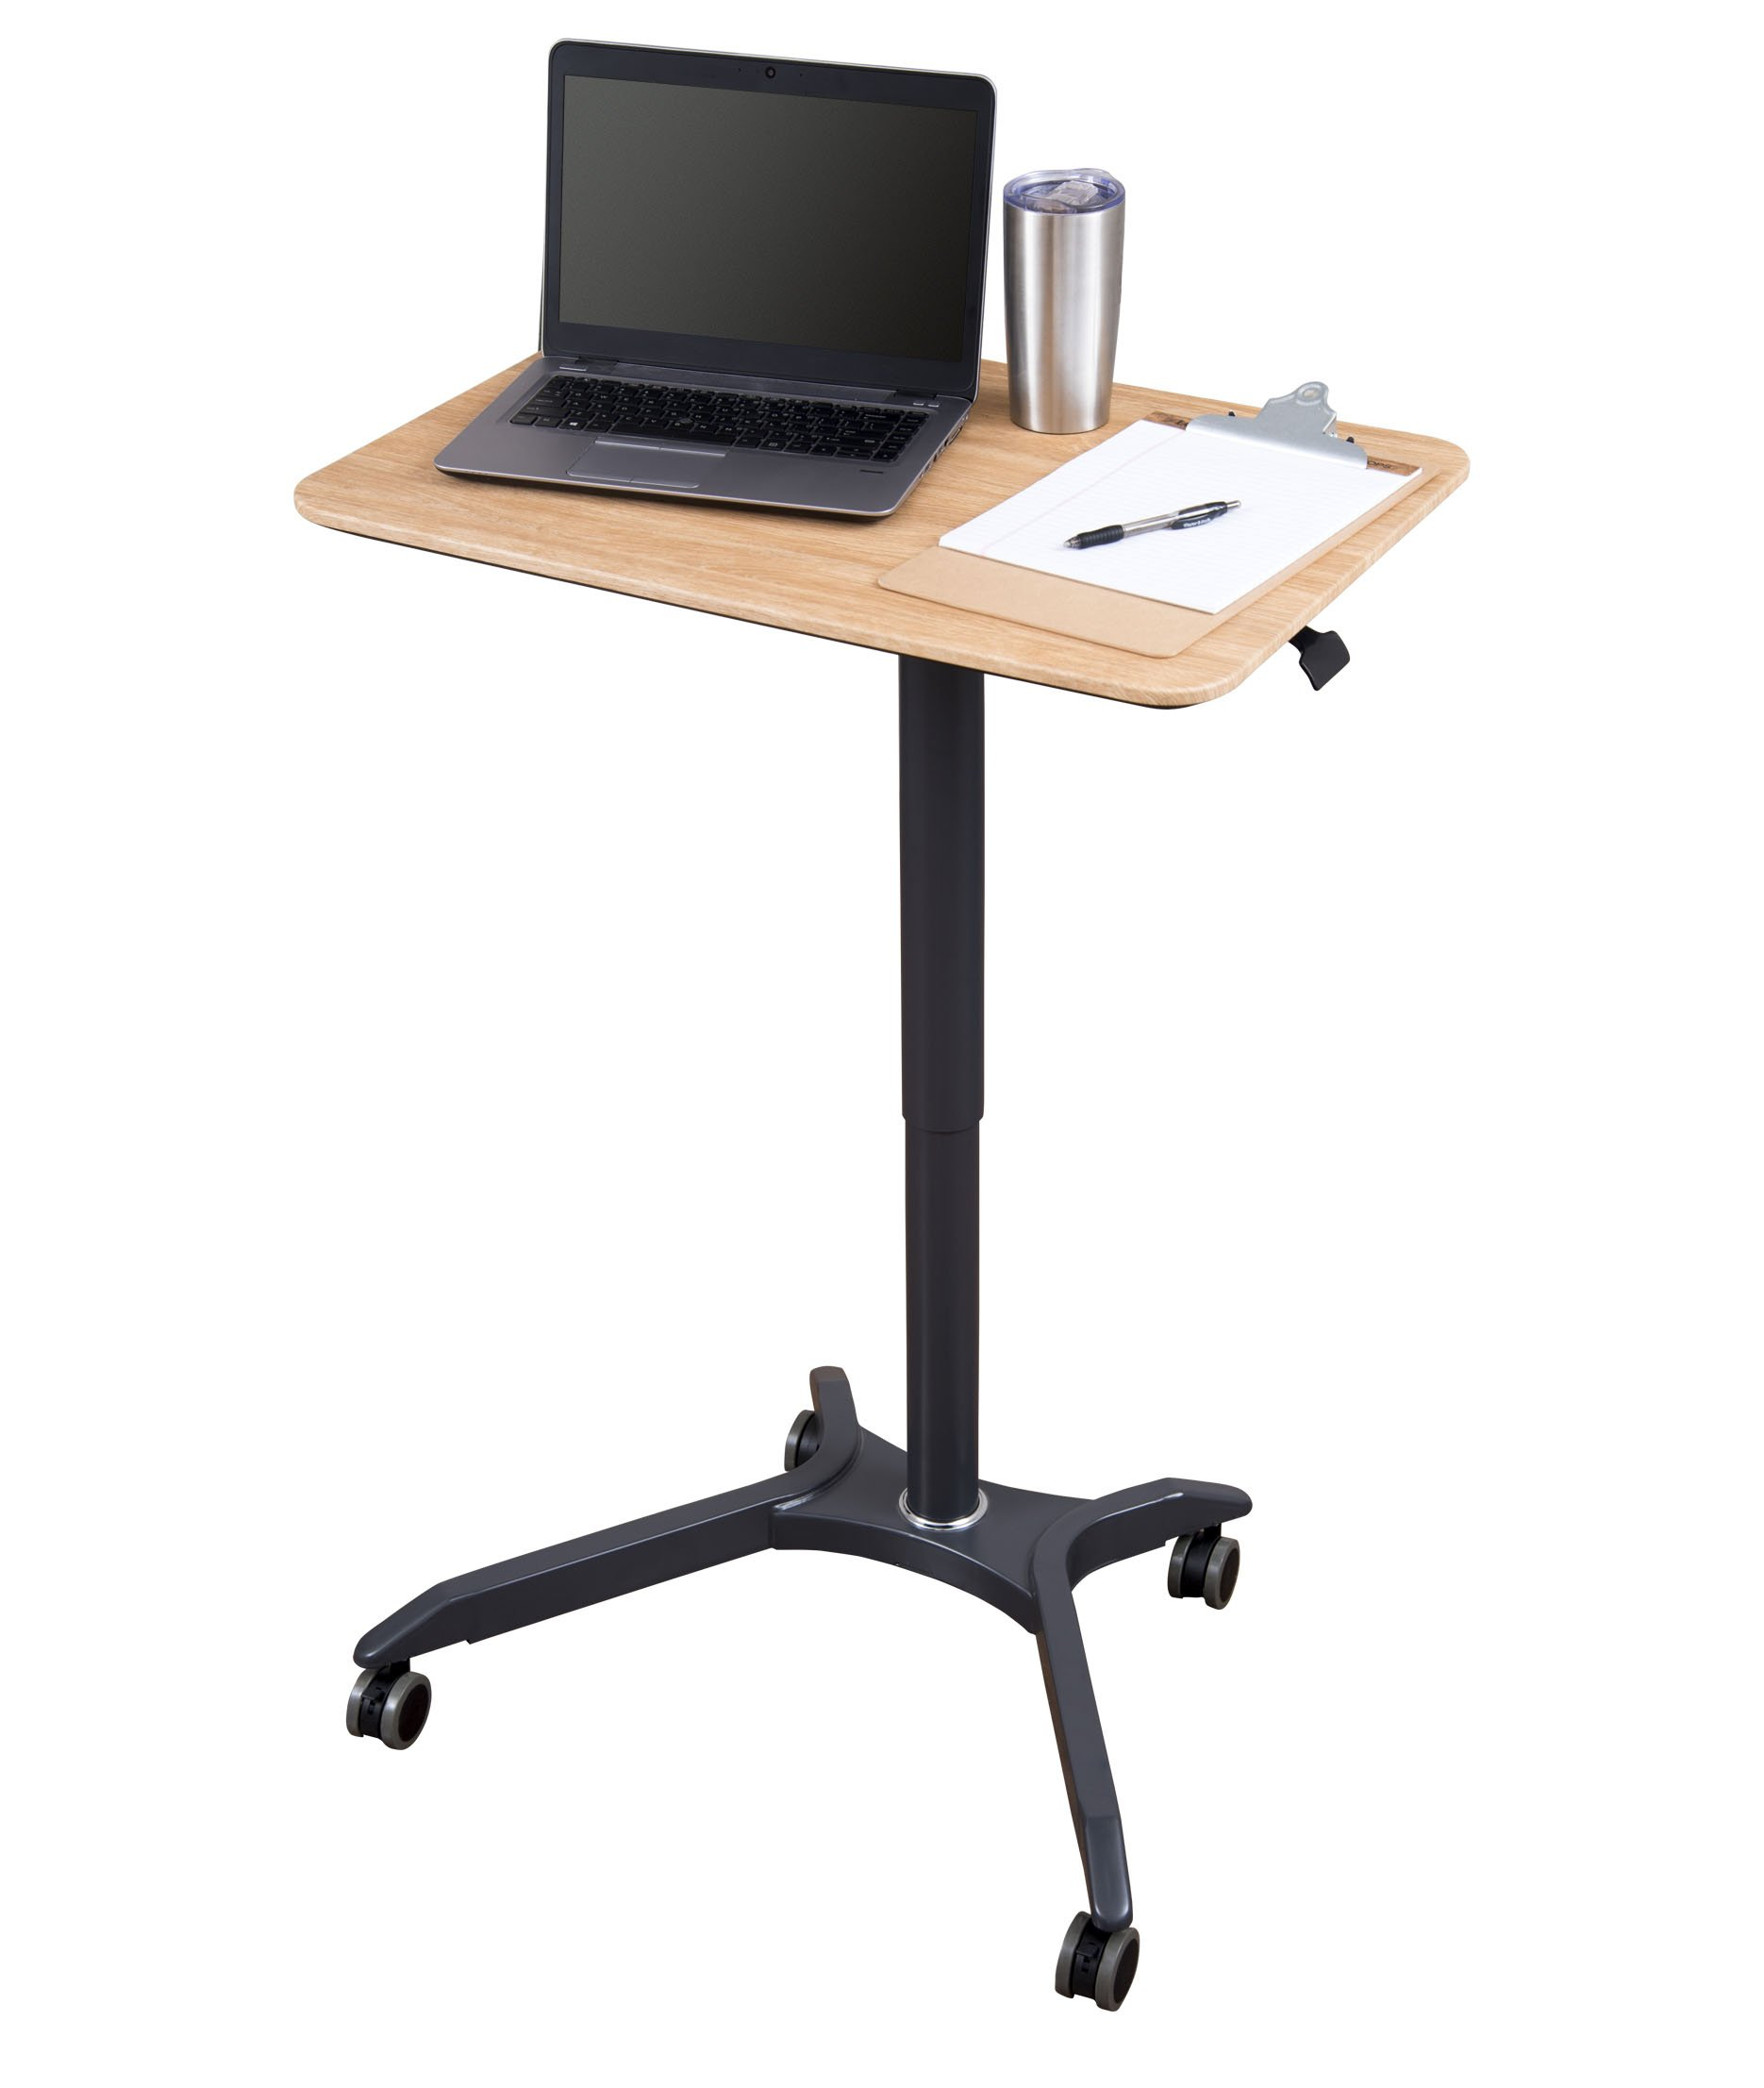 Pneumatic Adjustable Height Laptop Desk Cart (28'', Charcoal/White Oak)